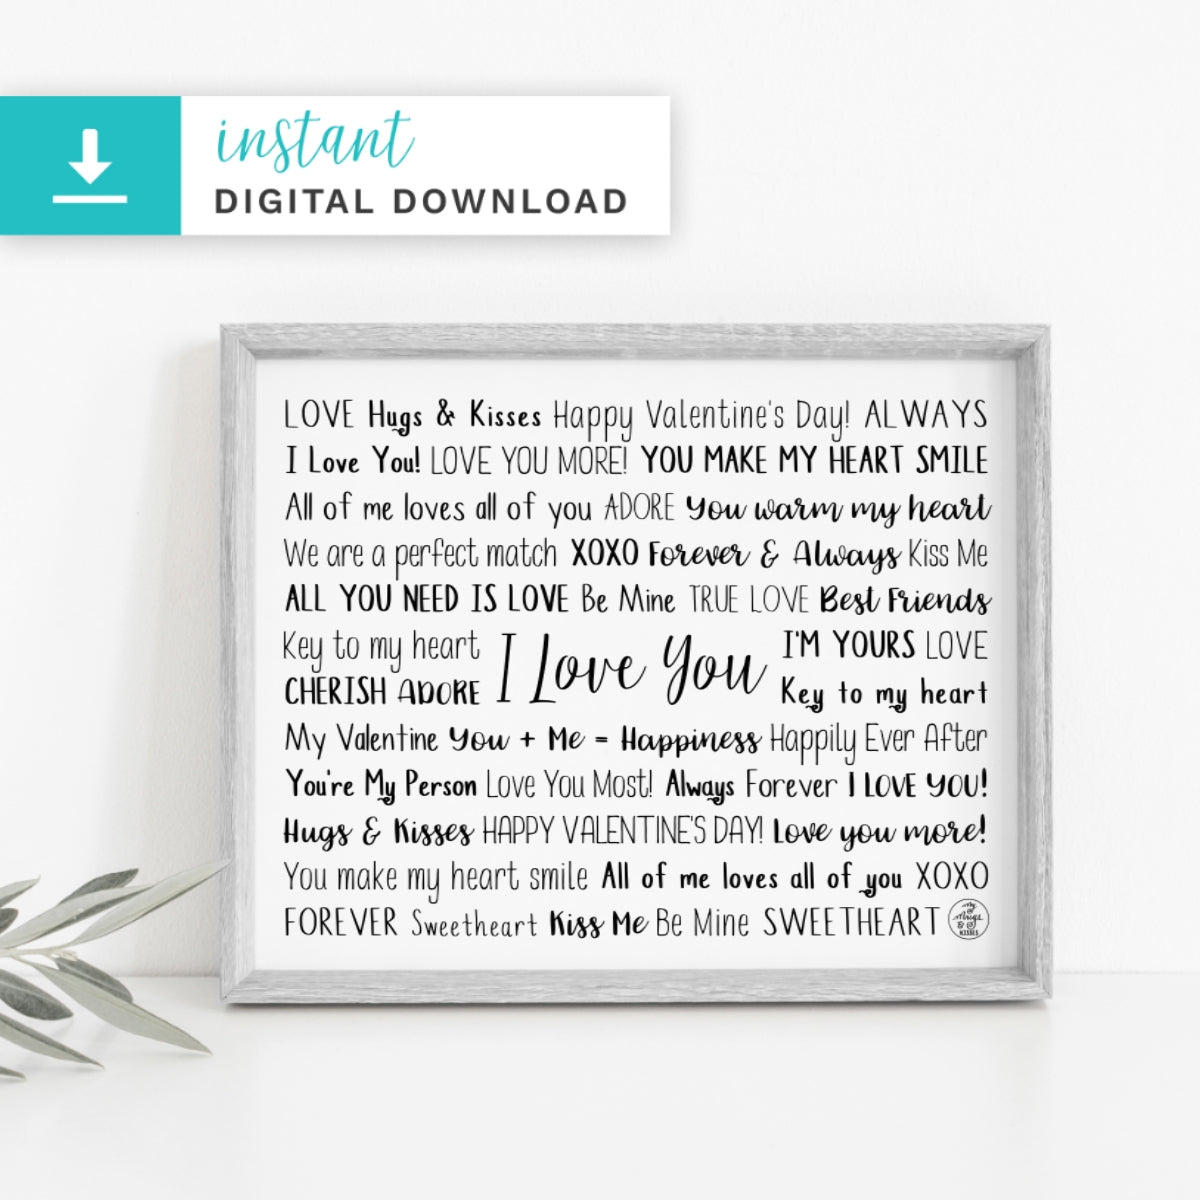 Valentine's Day Digital Download